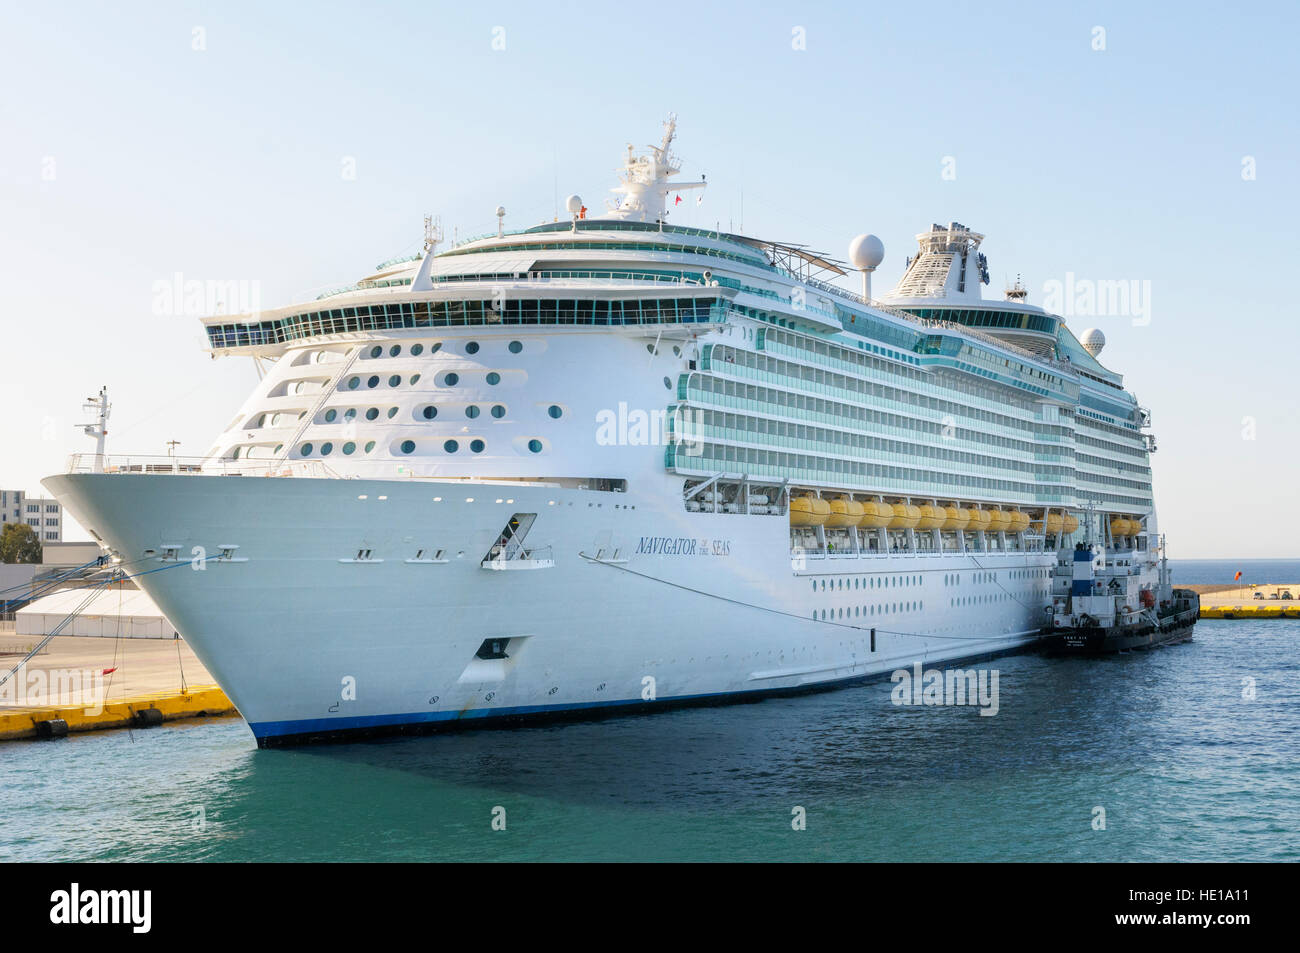 MS cruise ship Navigator of the Seas, moored in the port of Piraeus, Athens, Greece - Stock Image